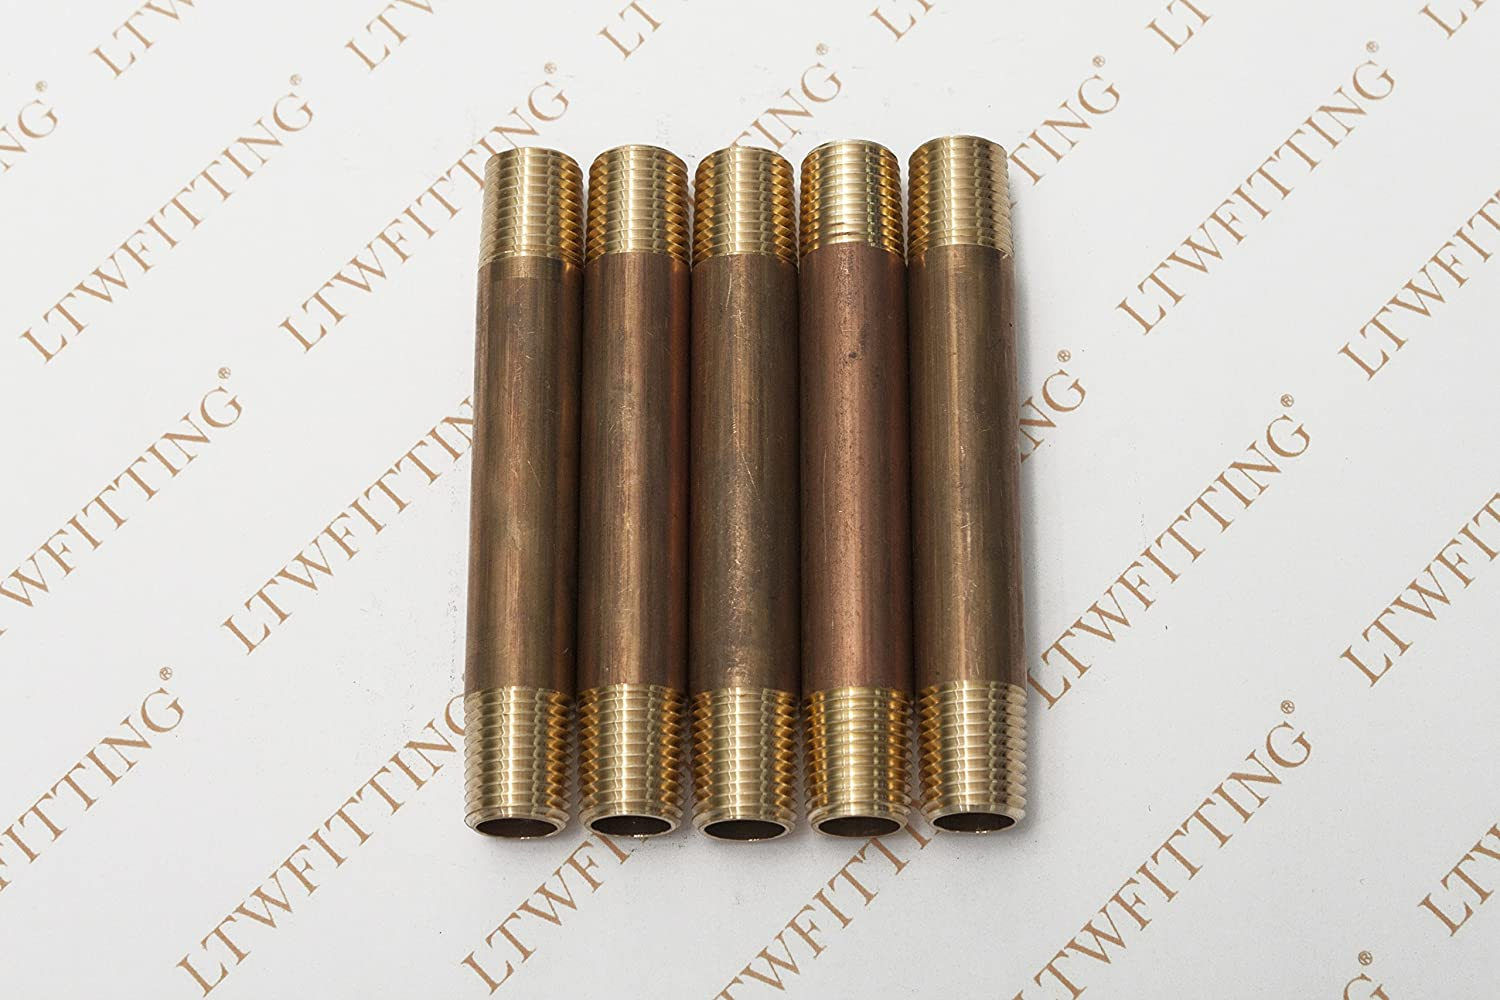 LTWFITTING Brass Pipe 3-1//2 Long Nipple Fitting 1//4 Male NPT Air Water Pack of 5